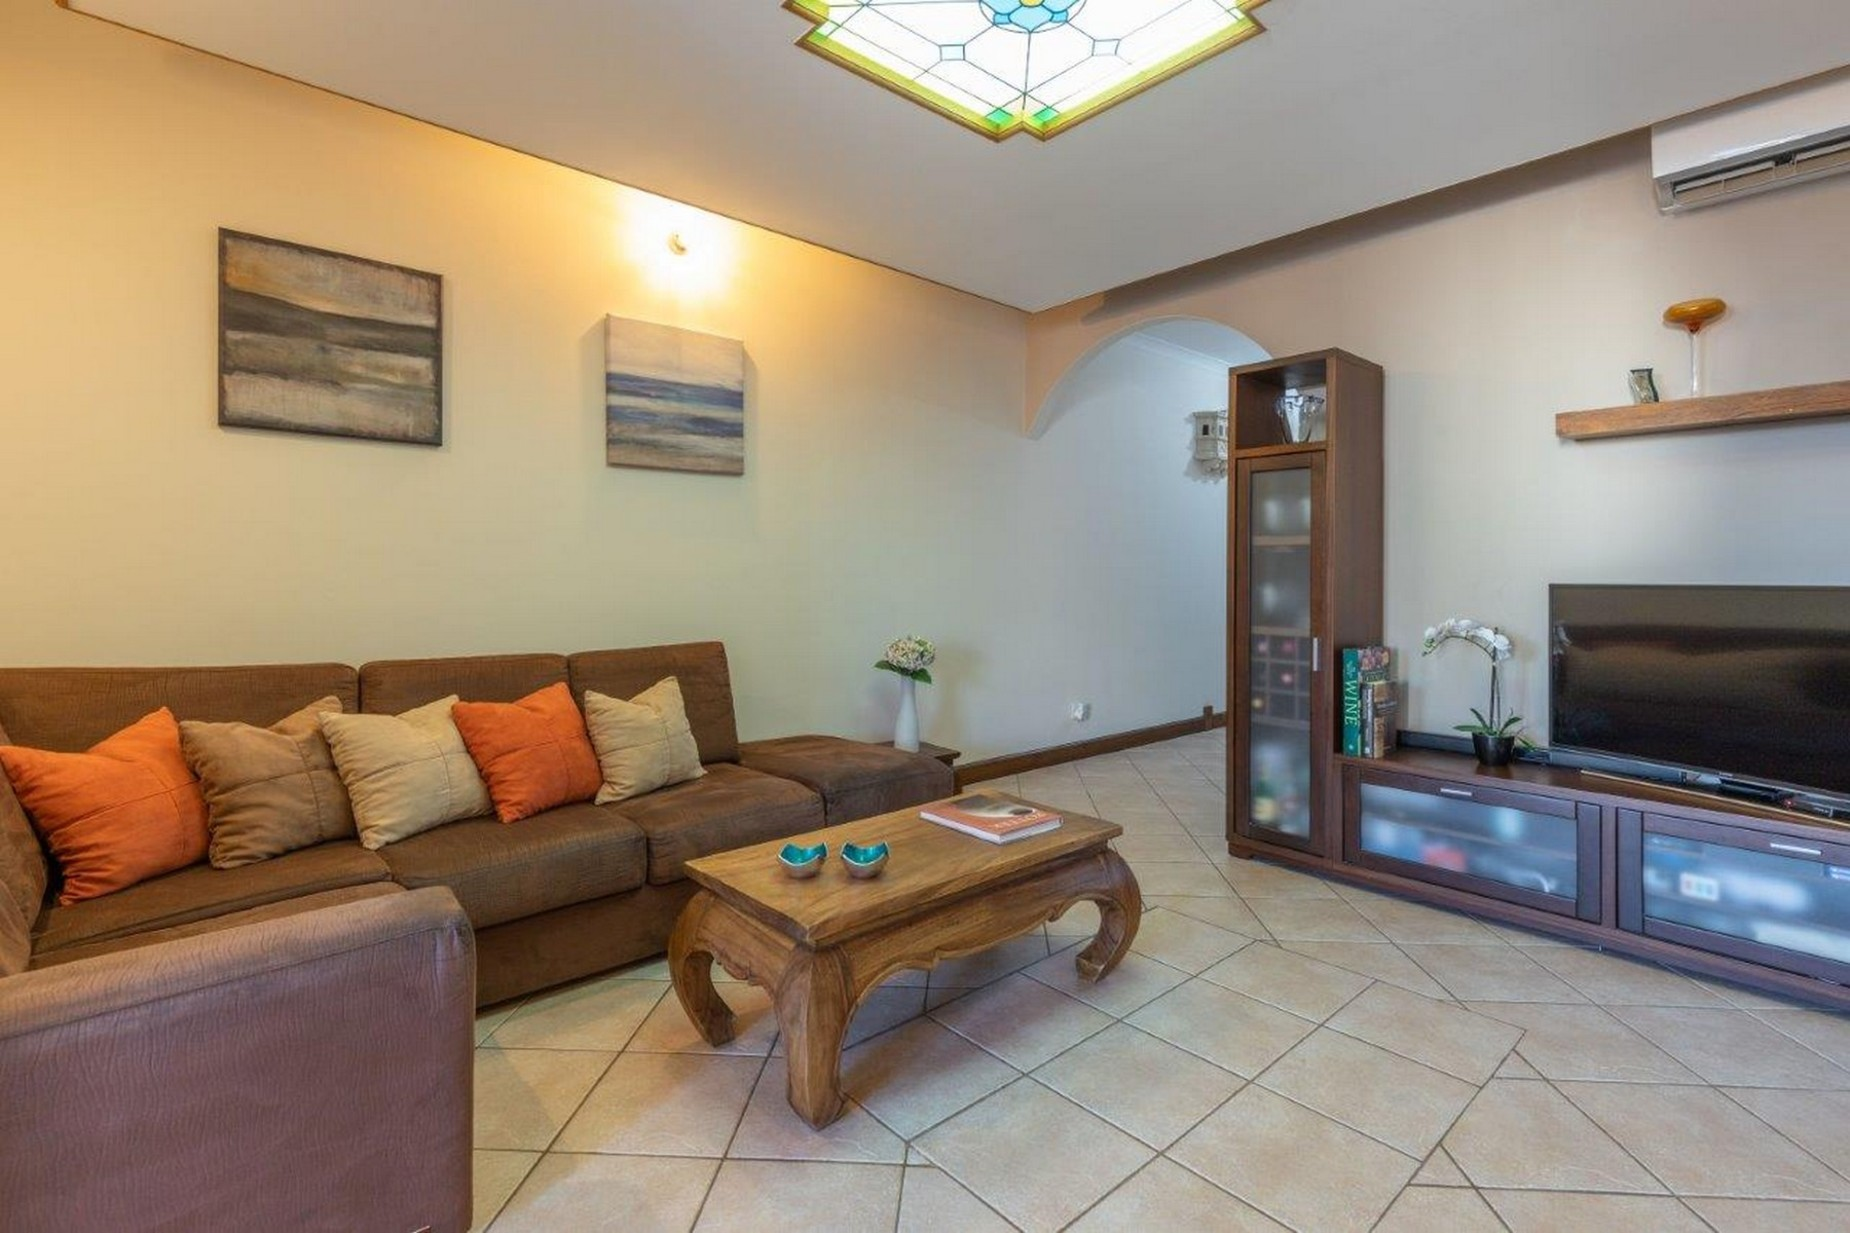 3 bed Apartment For Sale in Attard, Attard - thumb 6